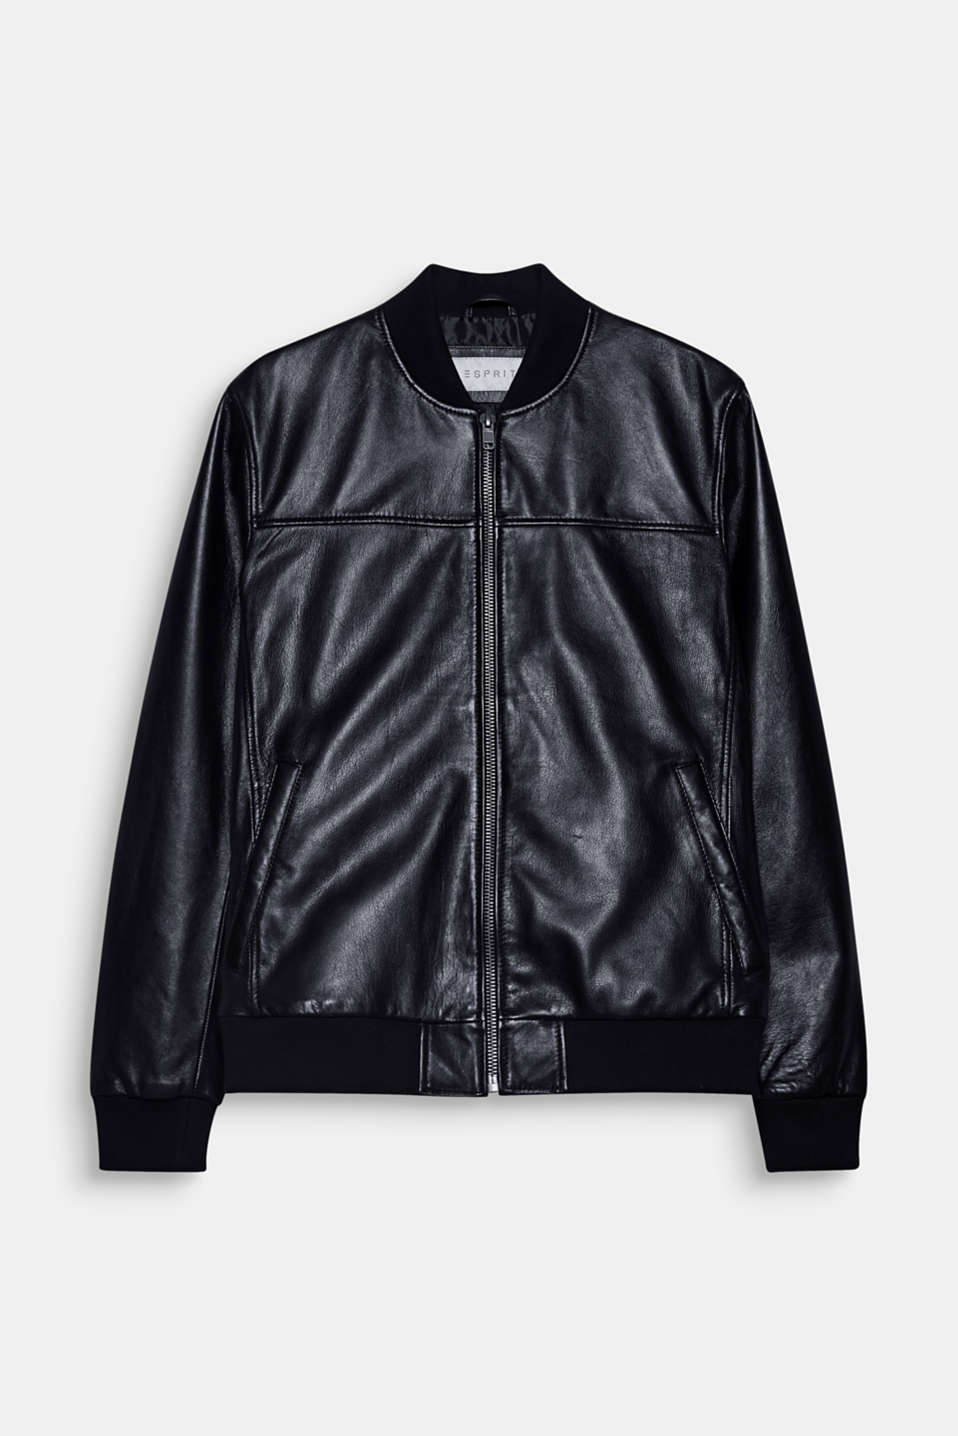 A sporty classic! This bomber jacket impresses with its soft sheepskin.